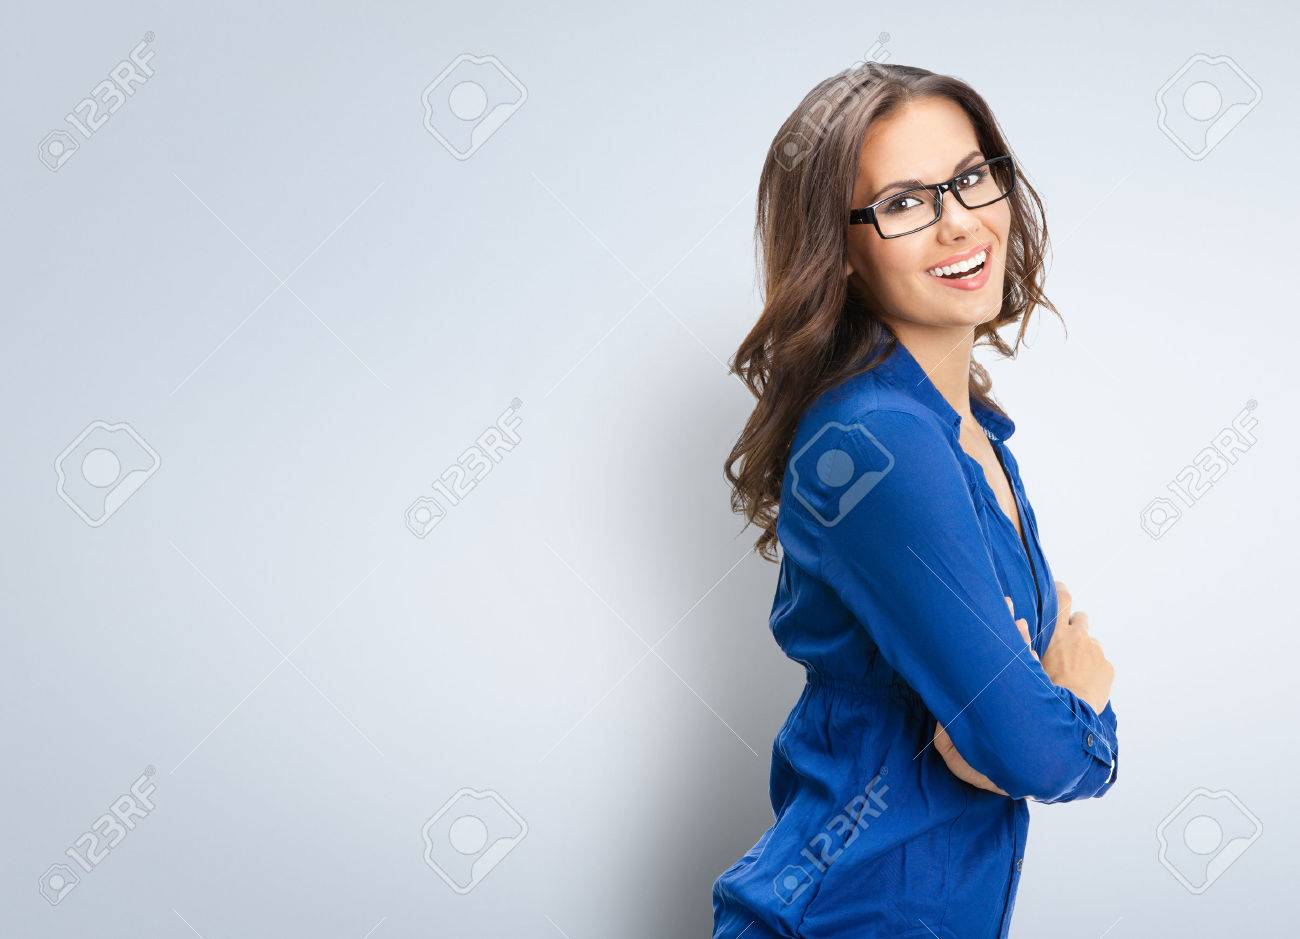 Portrait of smiling young businesswoman in glasses, with blank copyspace area for slogan or text - 40543353